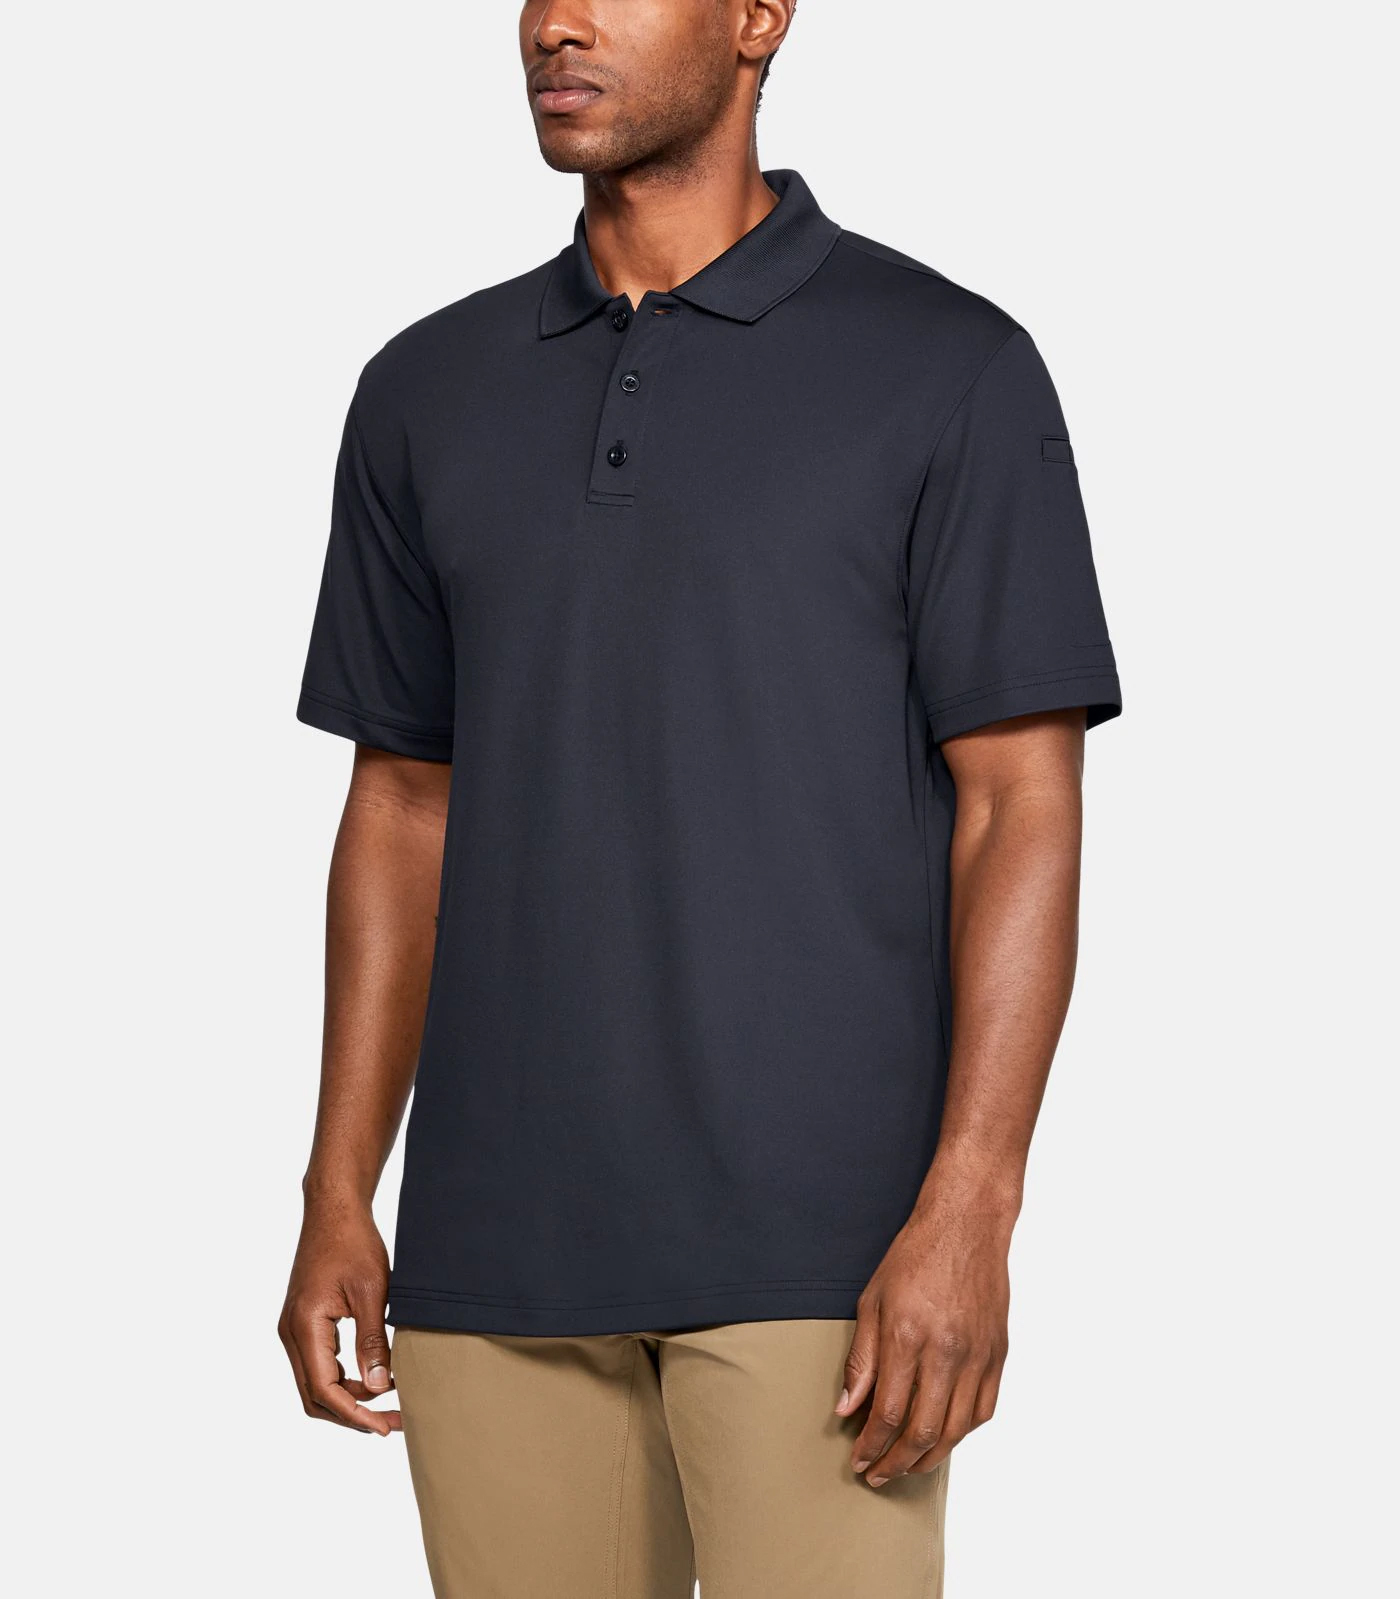 MENS_POLO_TacPerformance-SS_UAR1279759465_07